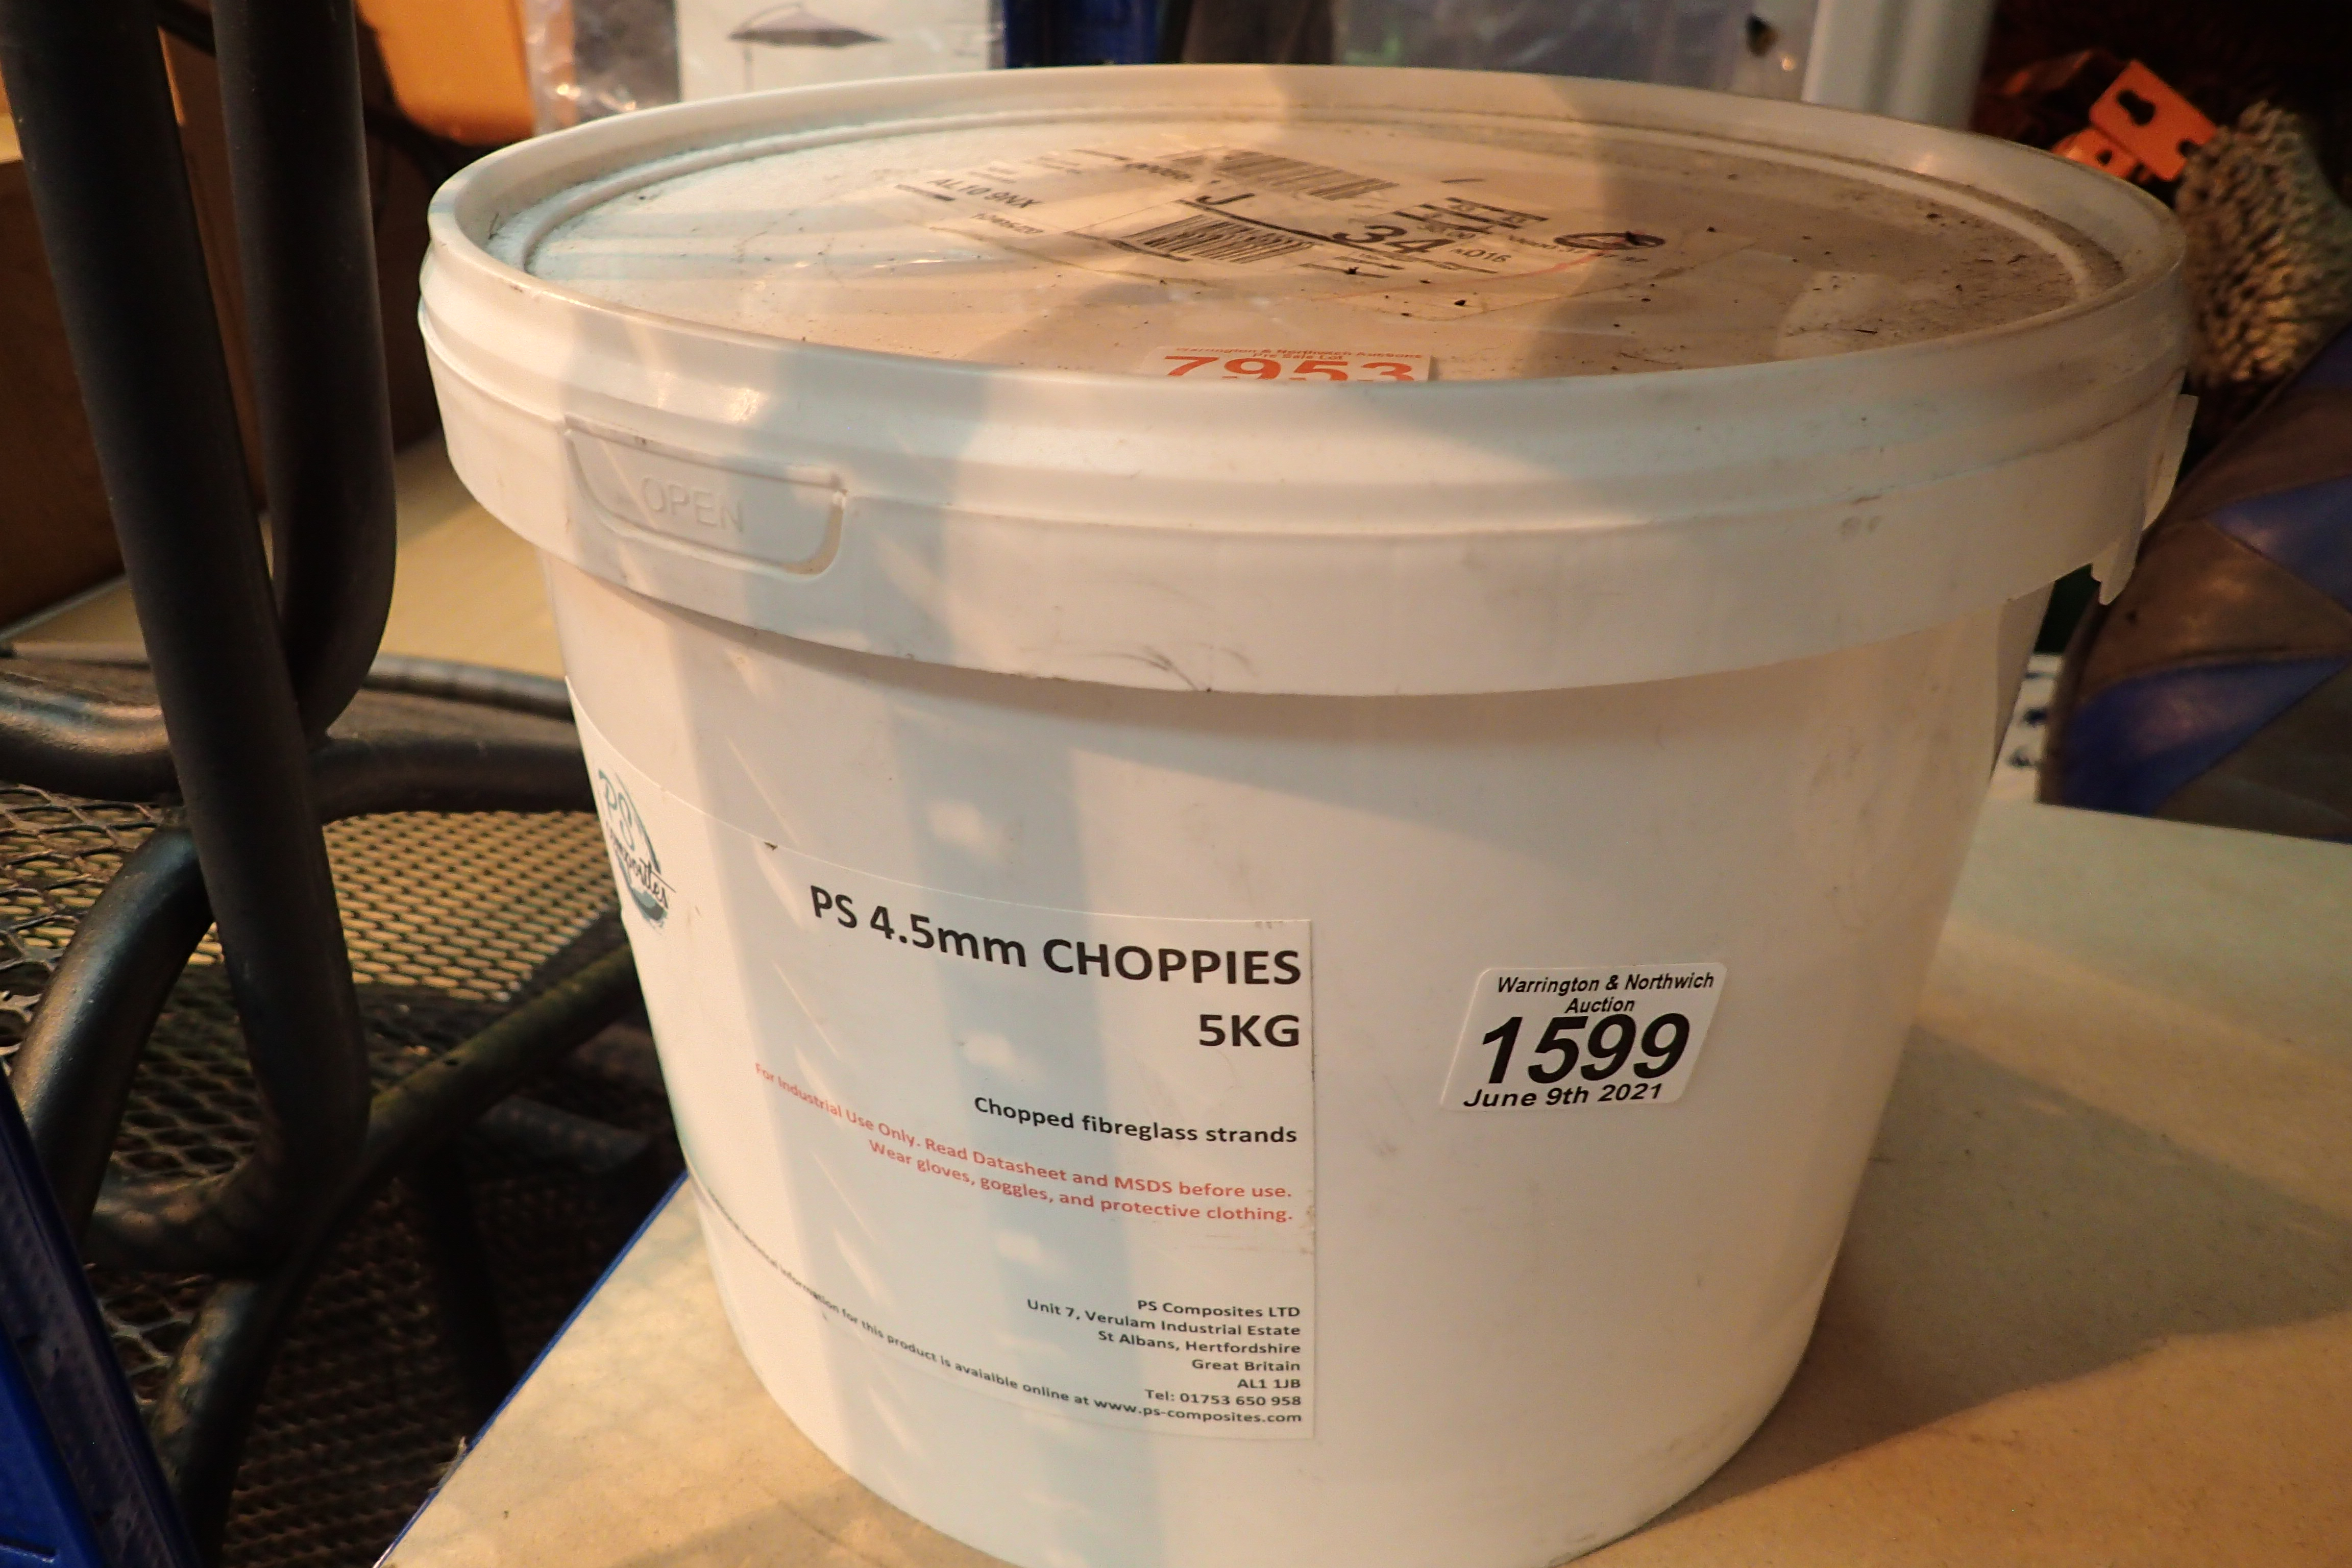 5kg tub of 4.5mm choppies fiberglass strands. Not available for in-house P&P, contact Paul O'Hea